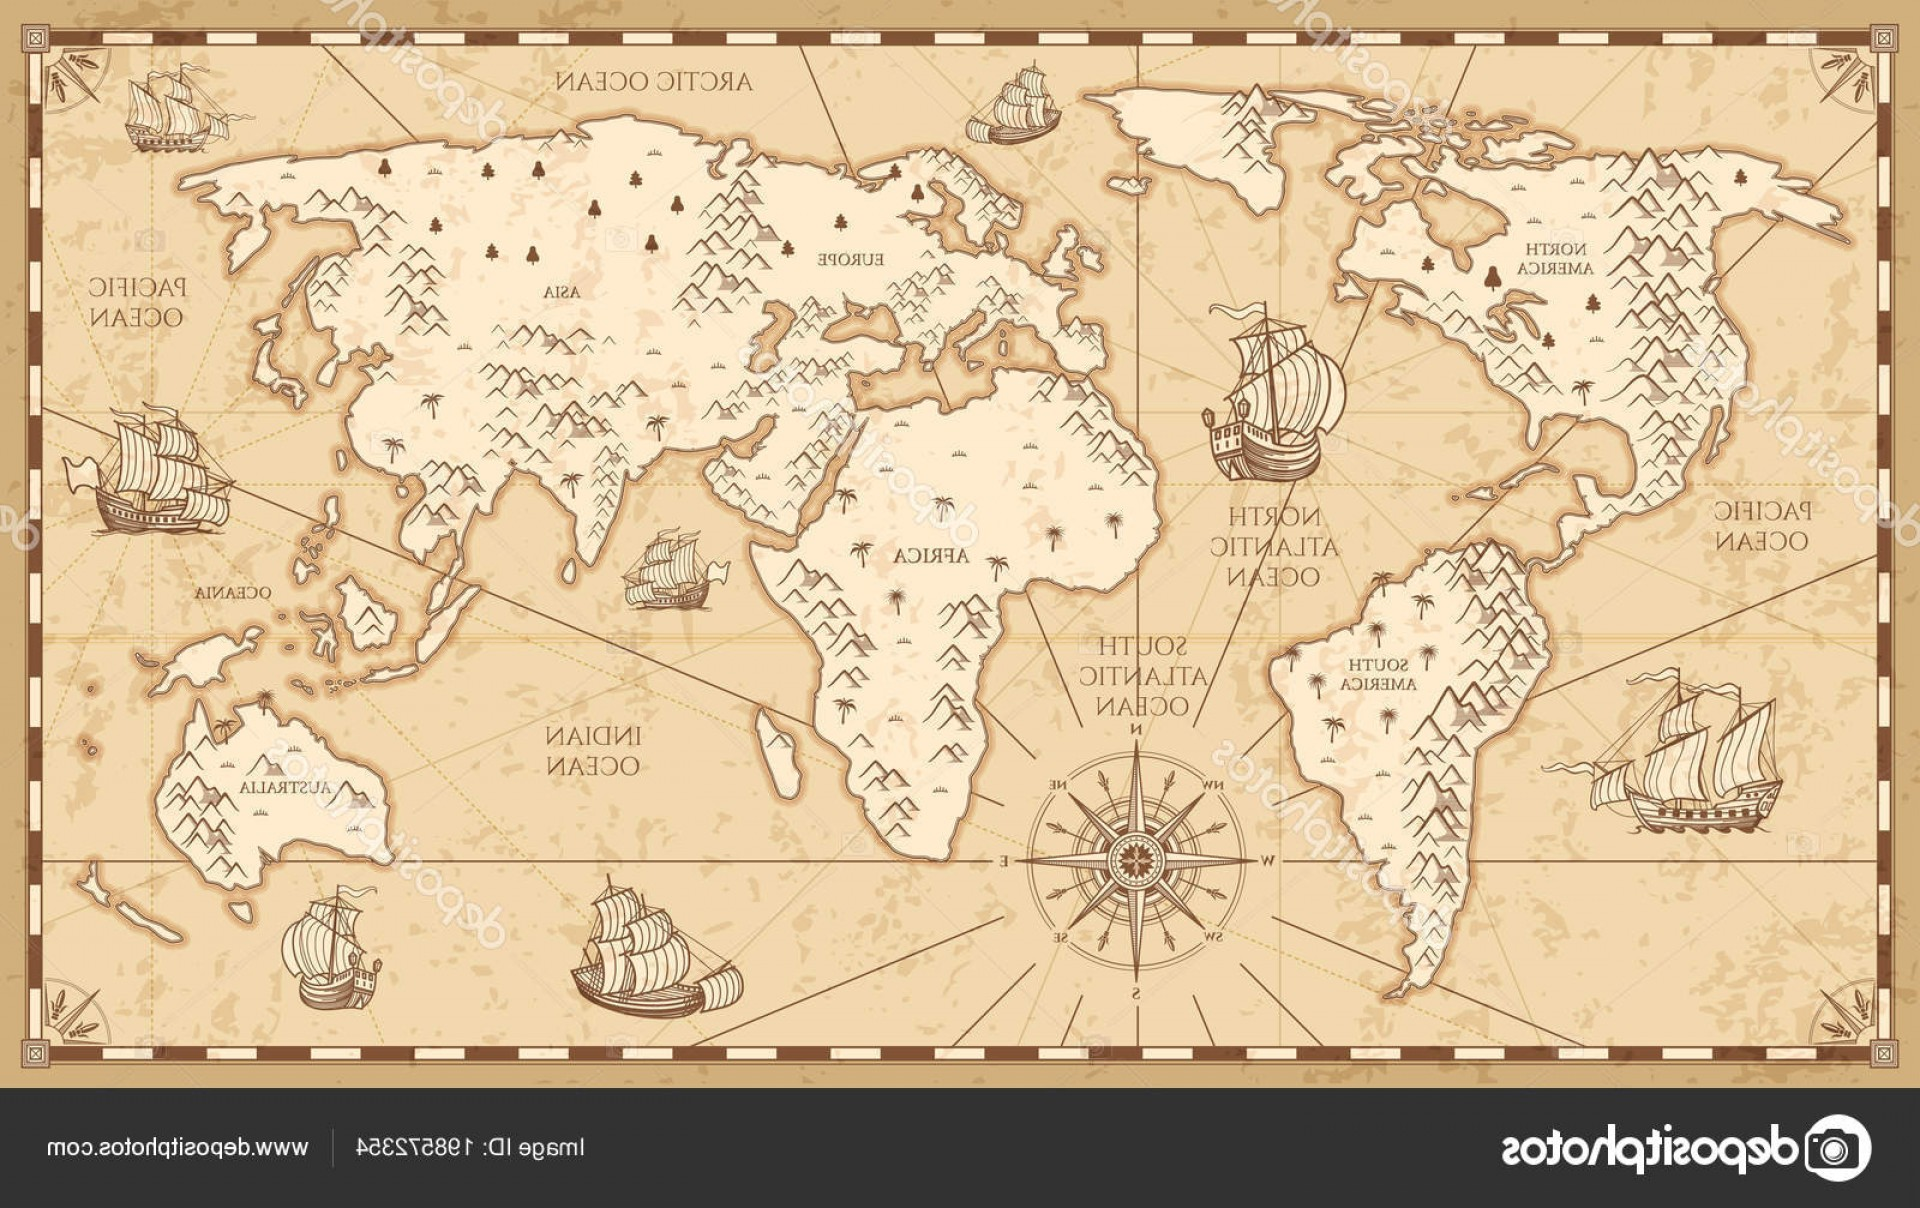 Vector World Map With Rivers: Stock Illustration Vintage Physical World Map With